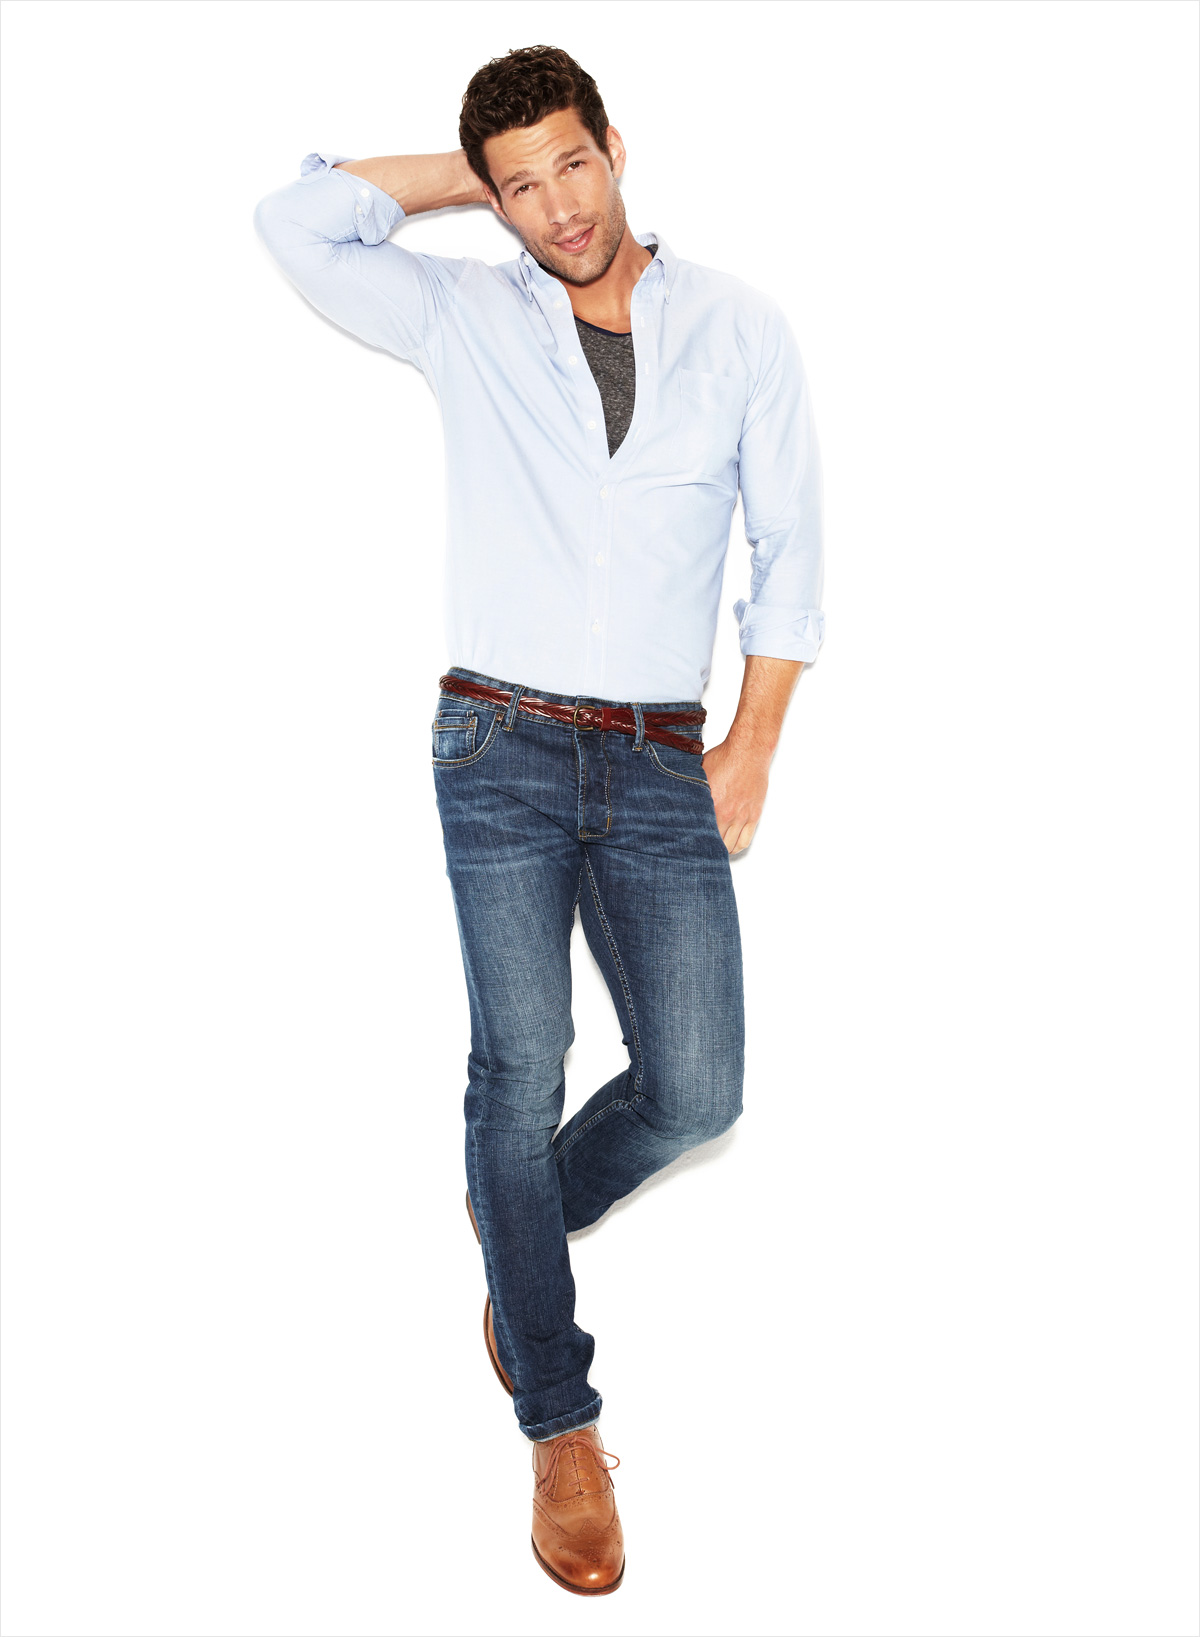 Find great deals on eBay for Jeans Model. Shop with confidence.